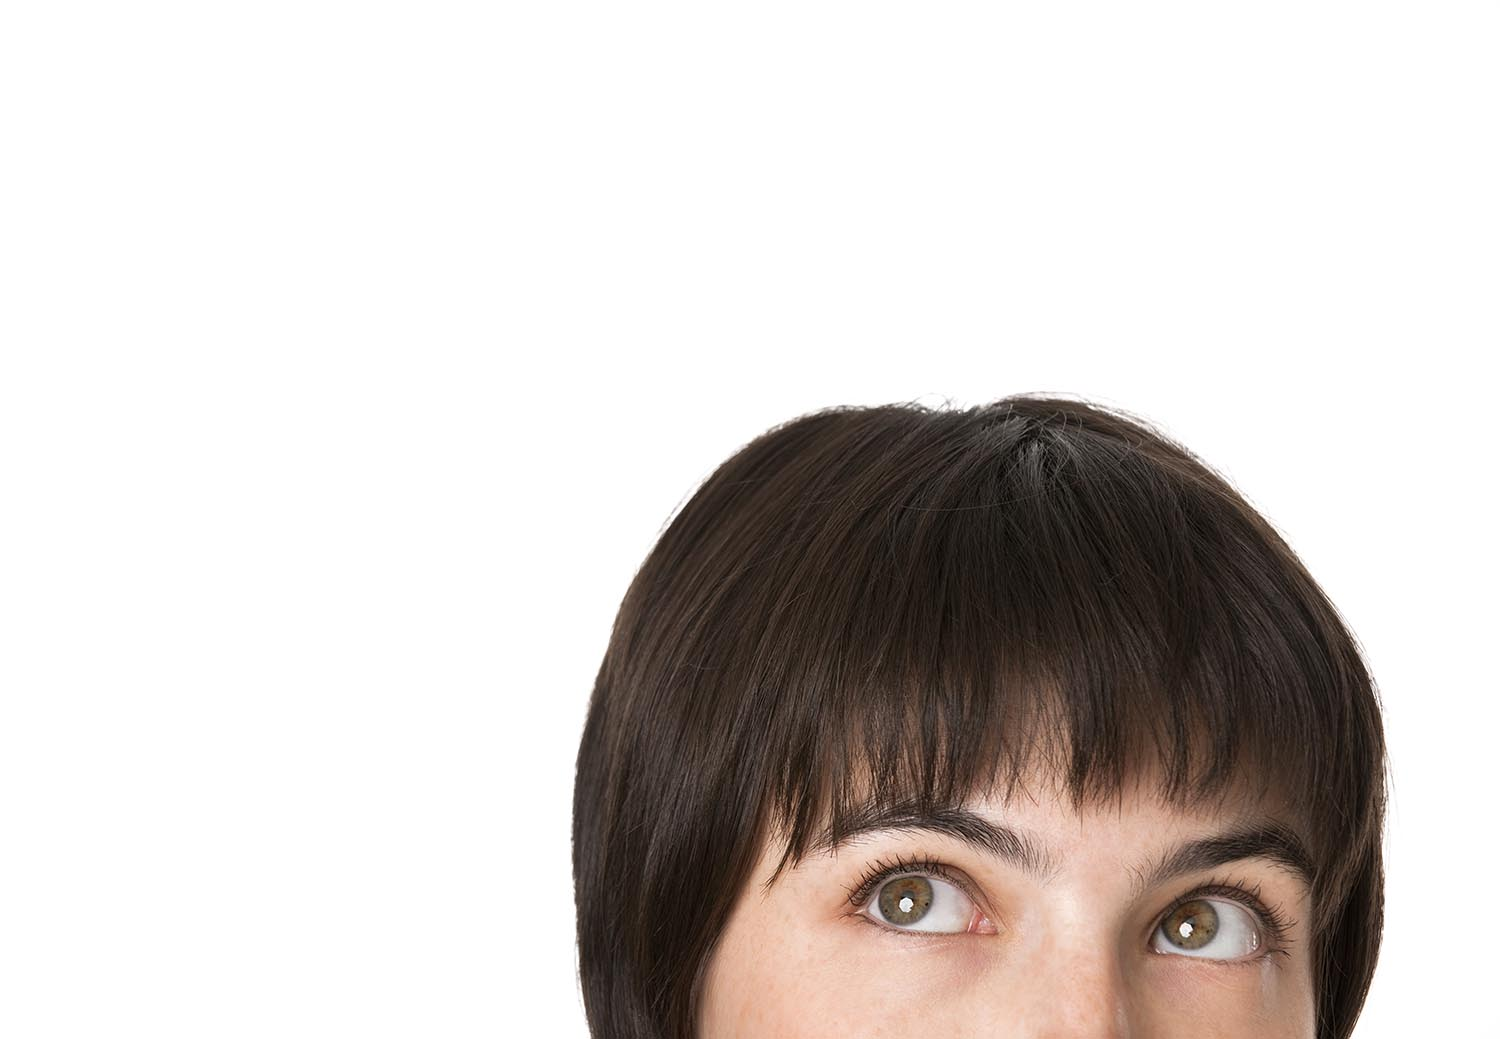 Free stock photo Close-up of a brunette woman looking up.